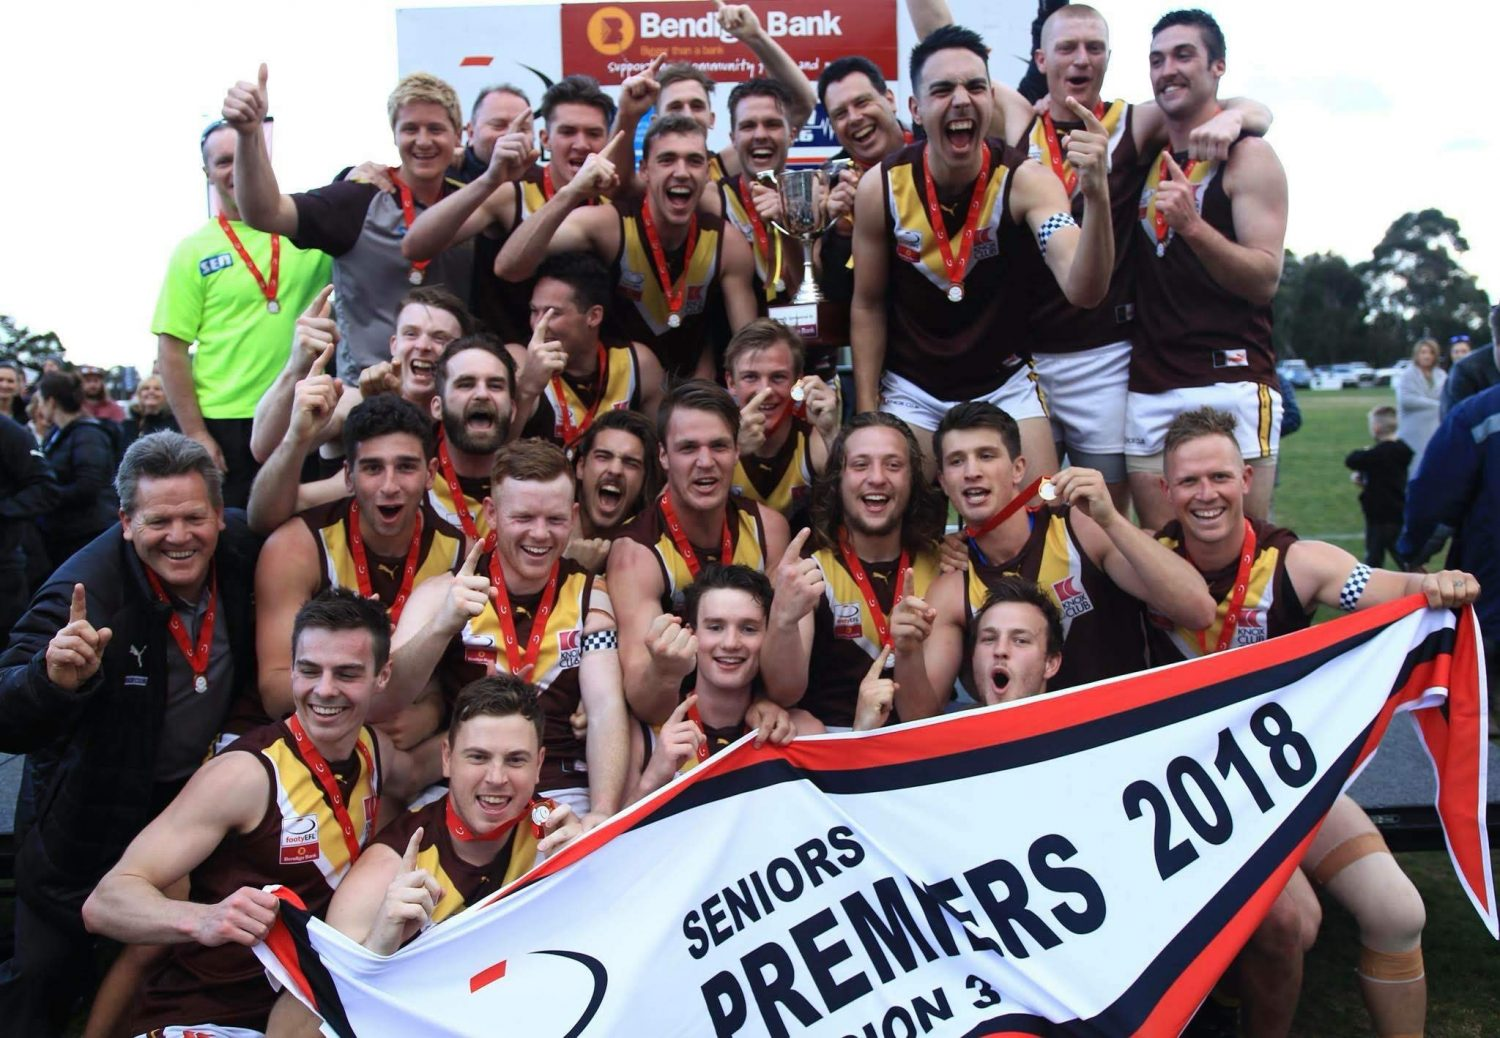 BORONIA HAWKS FOOTBALL NETBALL CLUB INC.